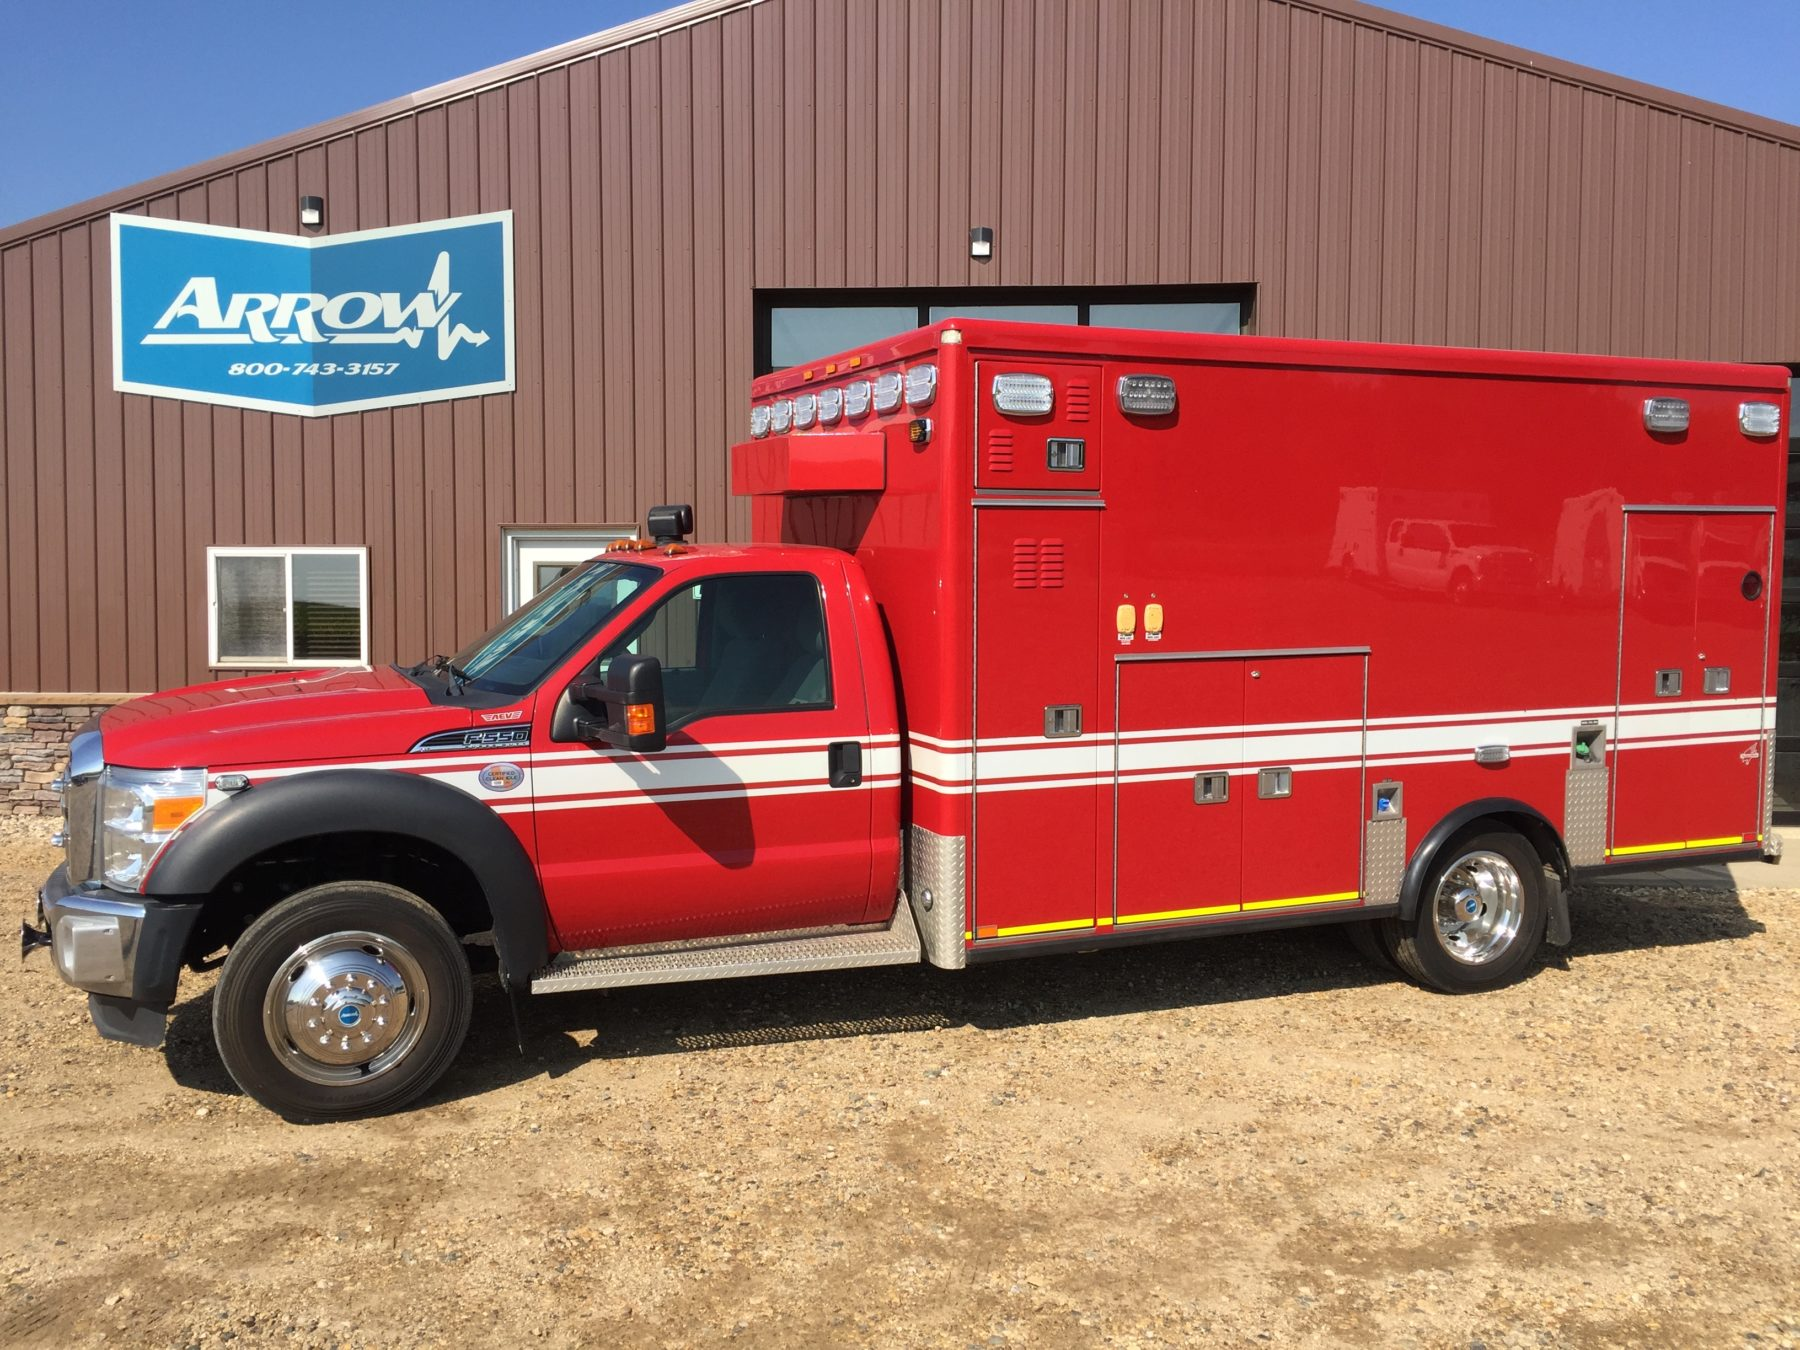 Truck # 79870 - 2012 Ford F550 4x4 Heavy Duty AEV Ambulance